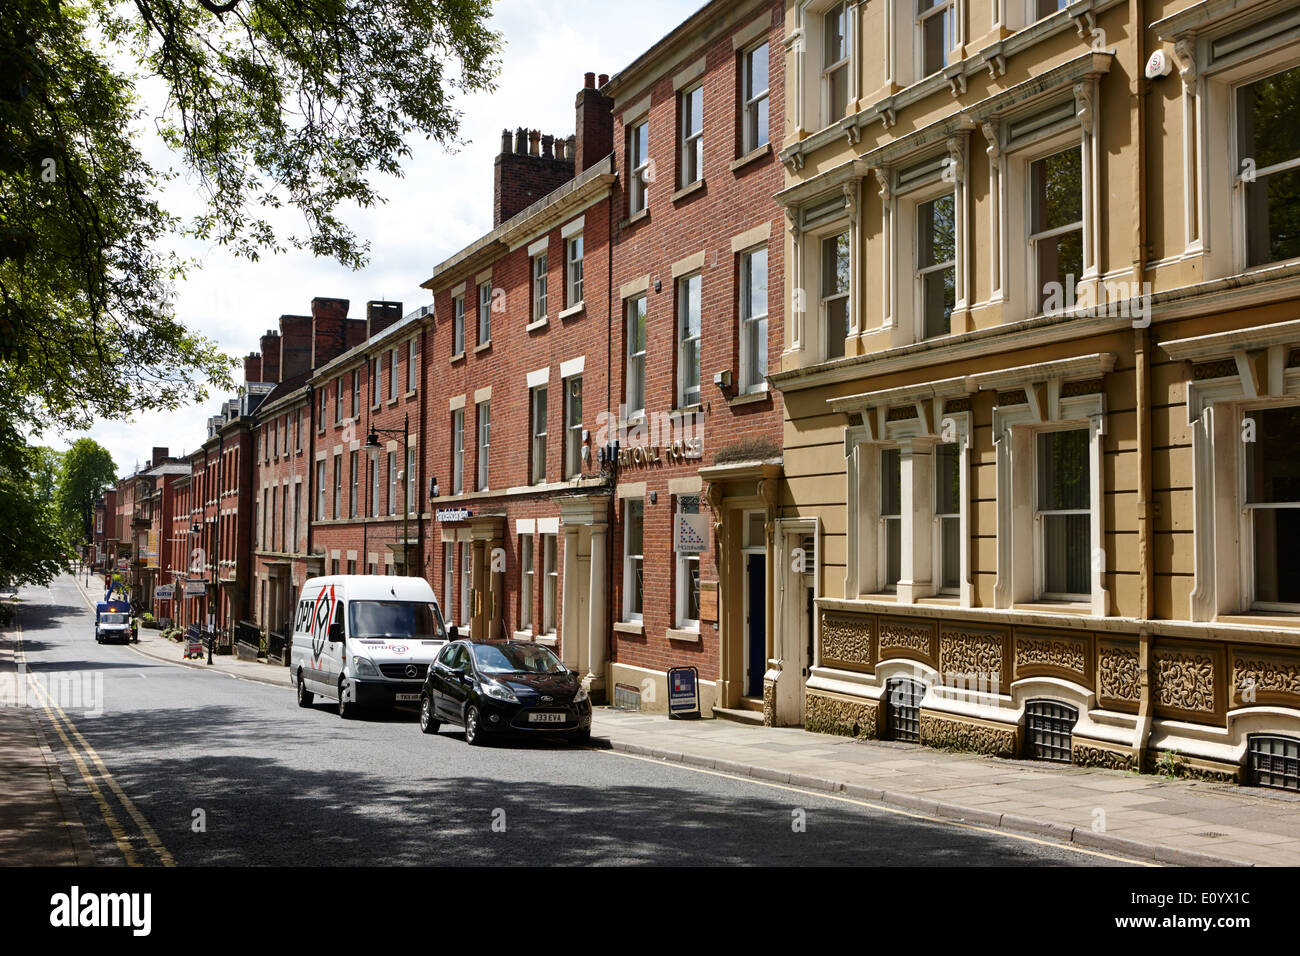 western side of Winckley square georgian town planning Preston Lancashire UK - Stock Image